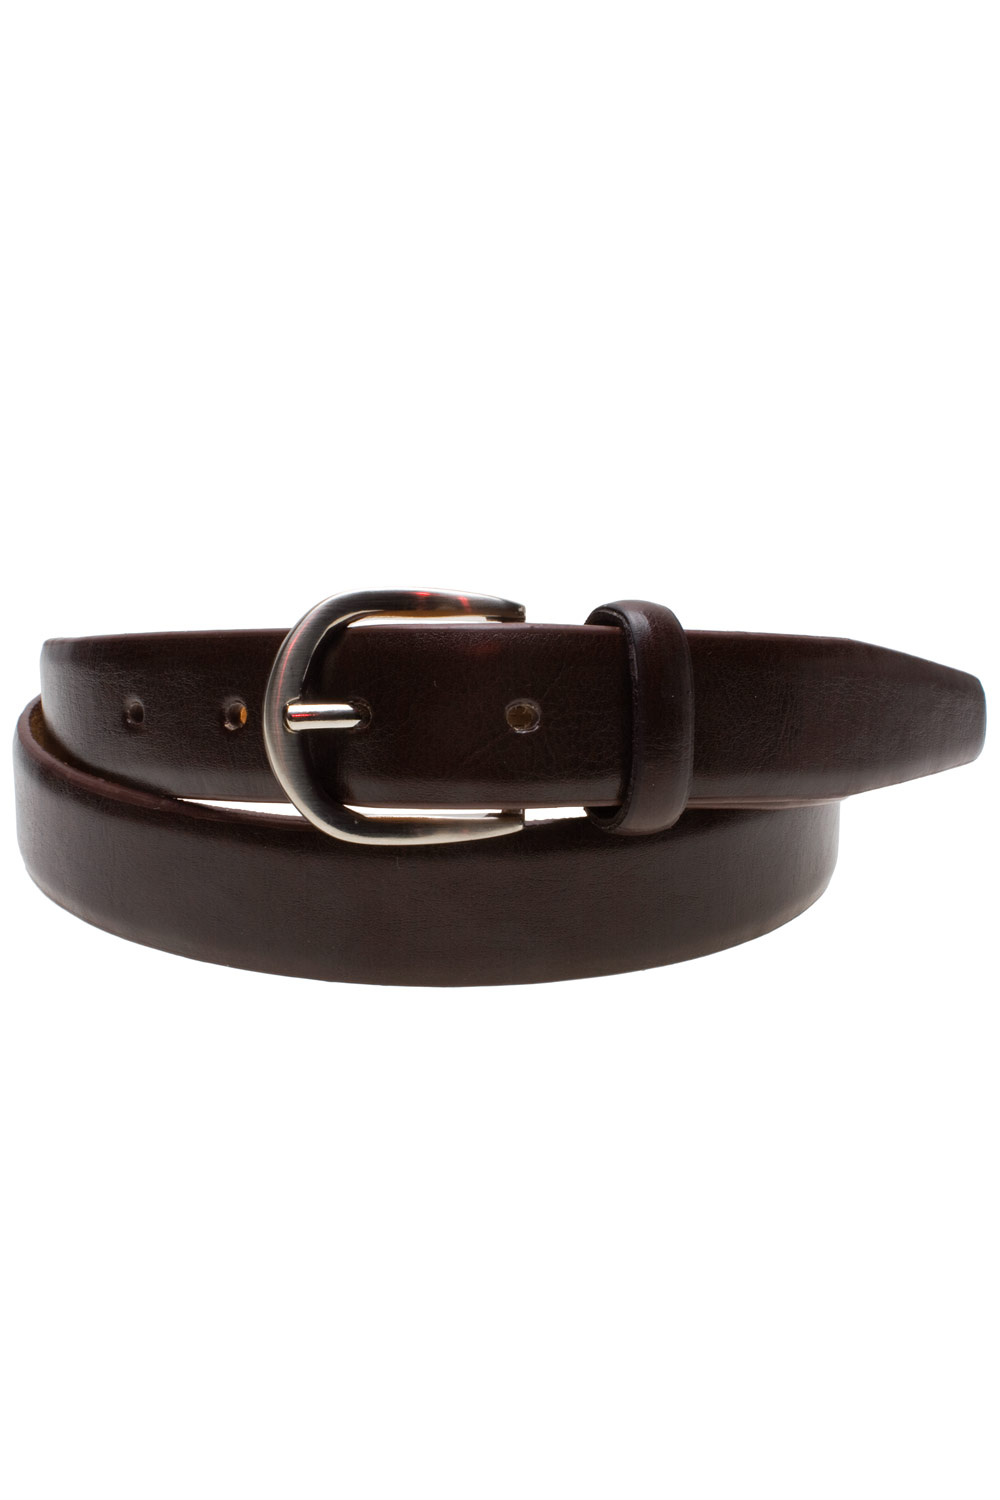 PIPEL by TANAMY belt at oboy.com